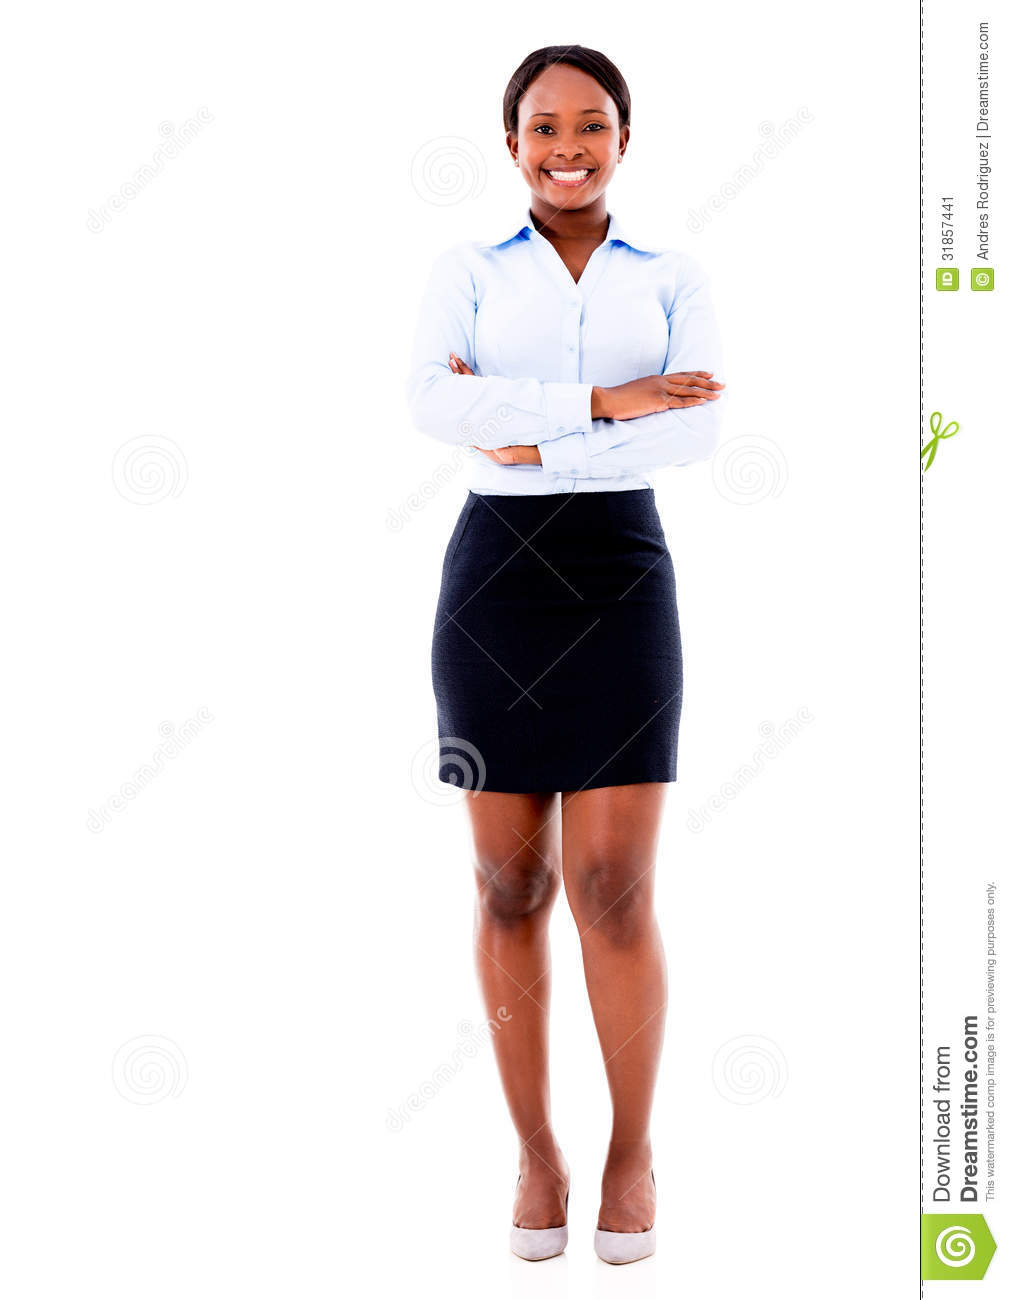 black-business-woman-smiling-isolated-over-white-background-31857441.jpg